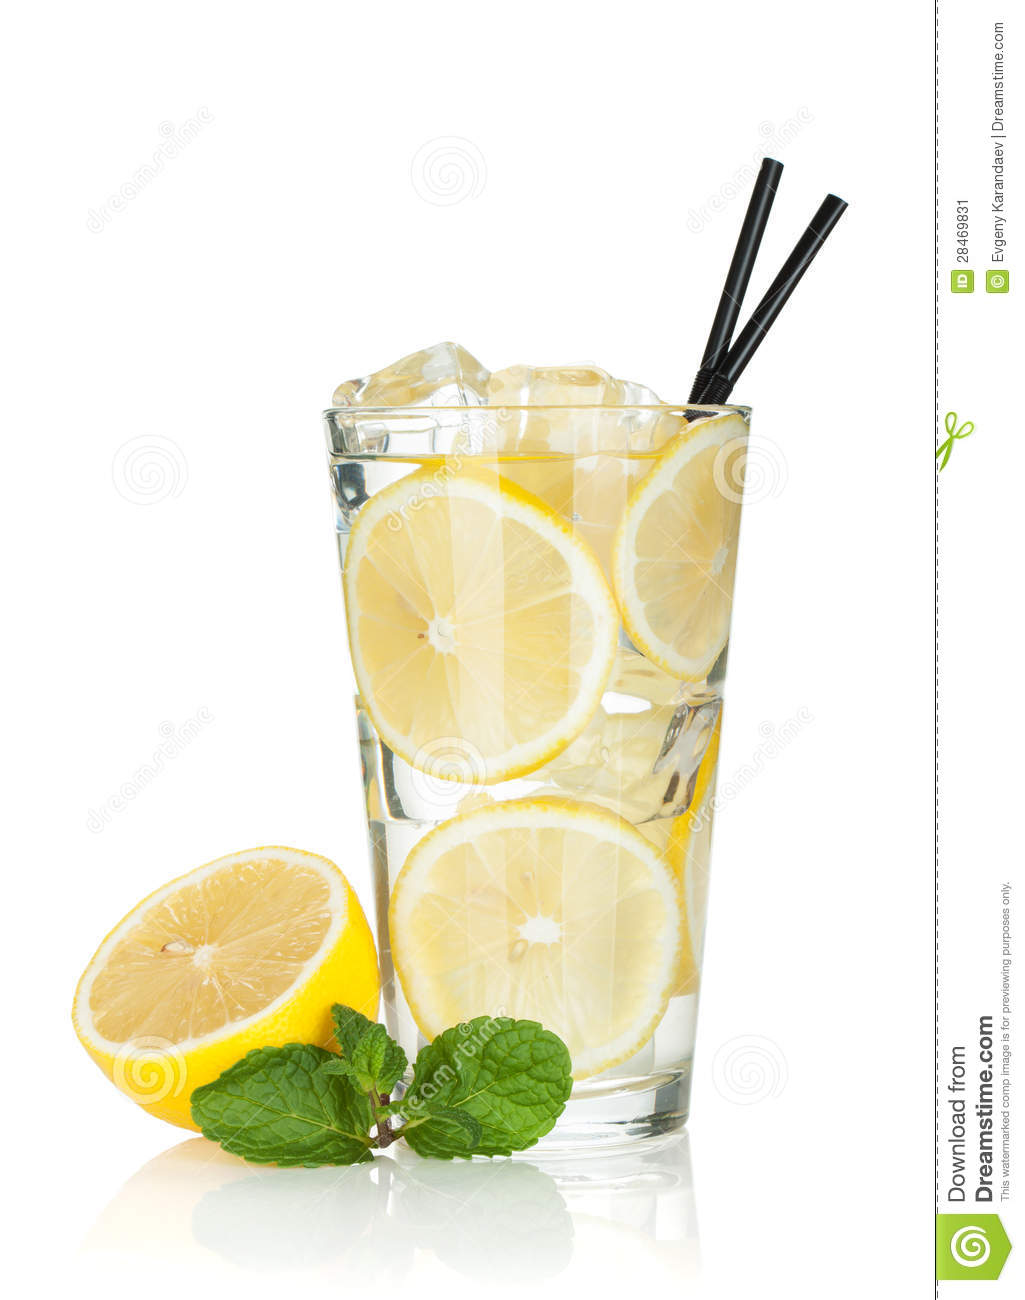 glass of lemonade with lemon and mint stock image image